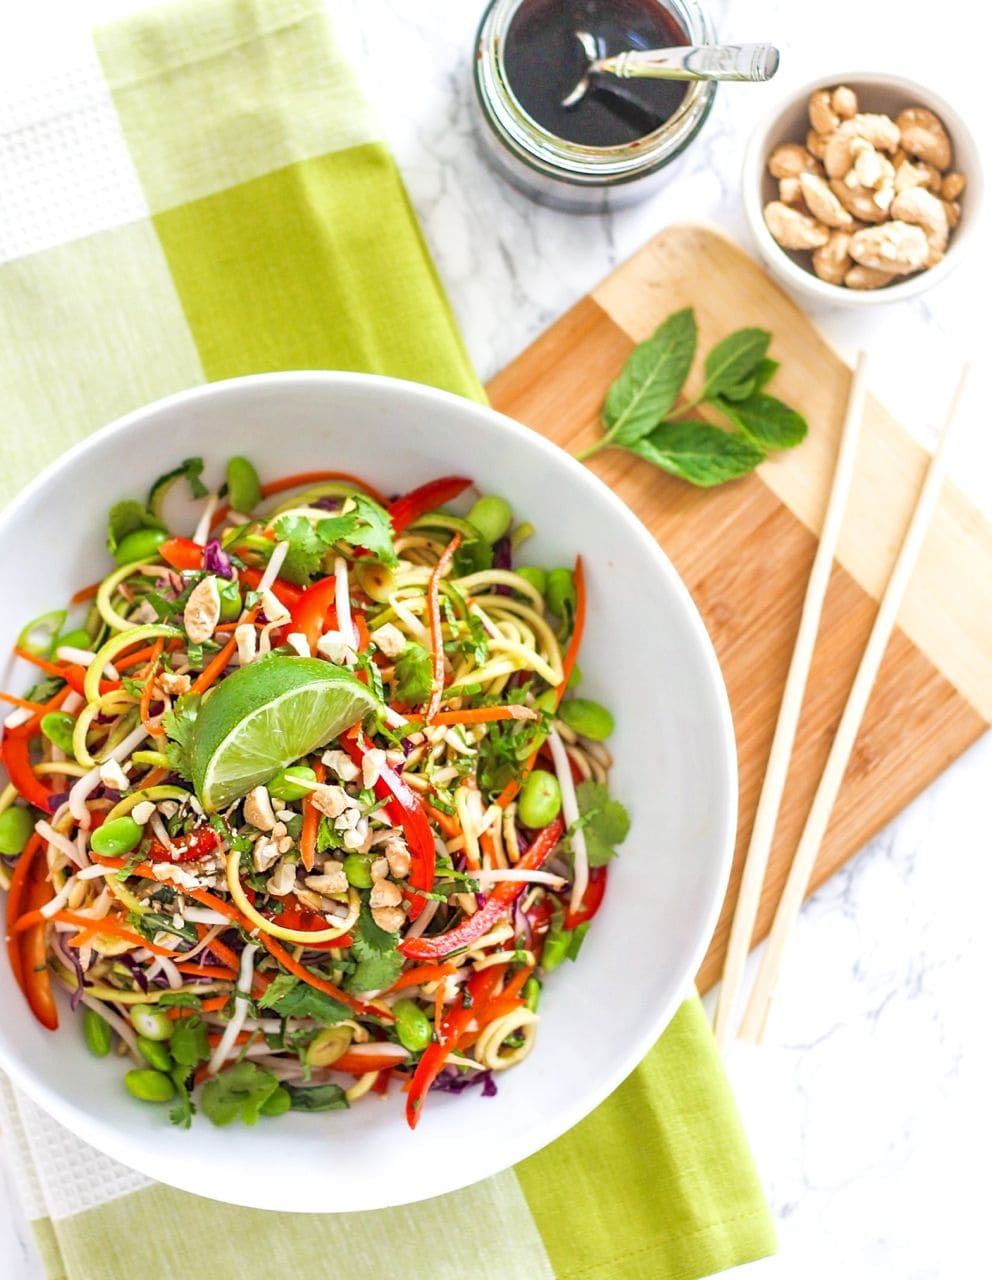 Bell Pepper Recipes: Vegan Zucchini Noodle Pad Thai